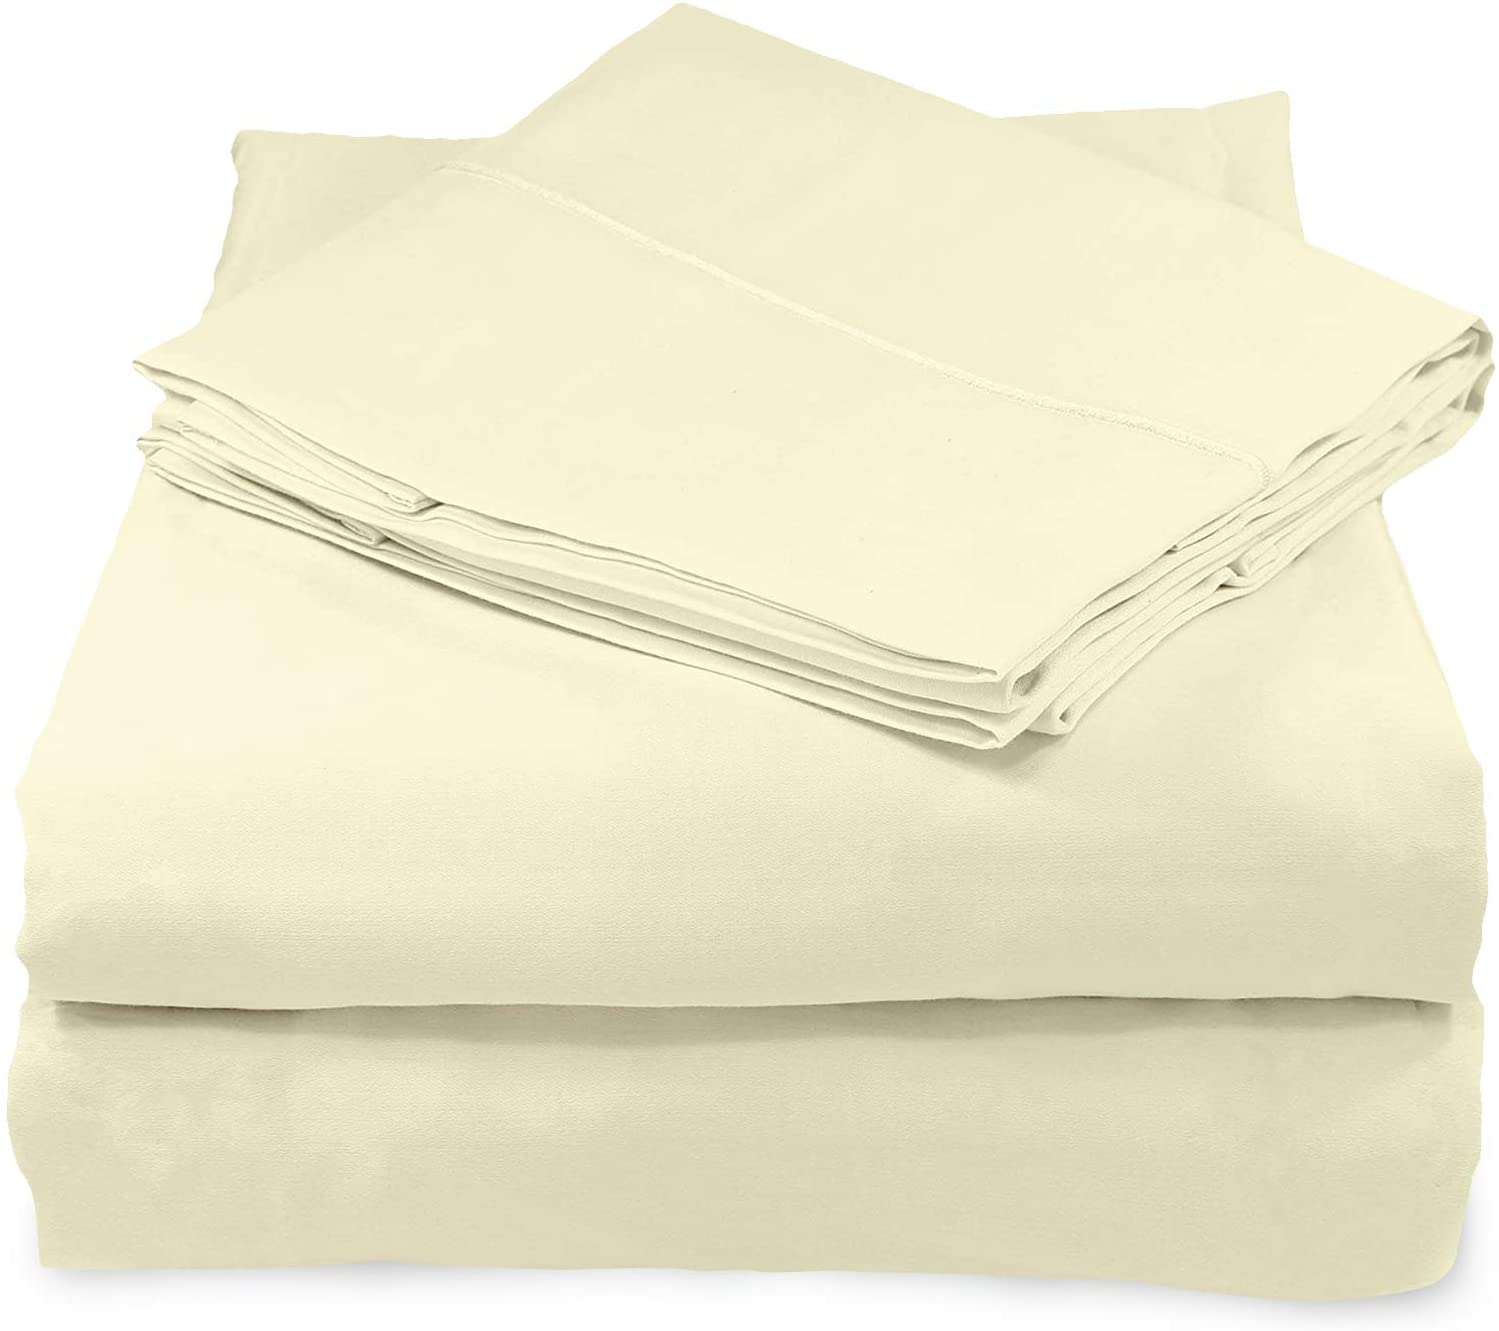 Whisper Organics, 100% Organic Cotton Sheets - 300 Thread Count Bed Sheets Set - Premium Quality Hypoallergenic Sheets - Deep Pocket Twin Sheet Set - GOTS Certified, Natural (King Size)